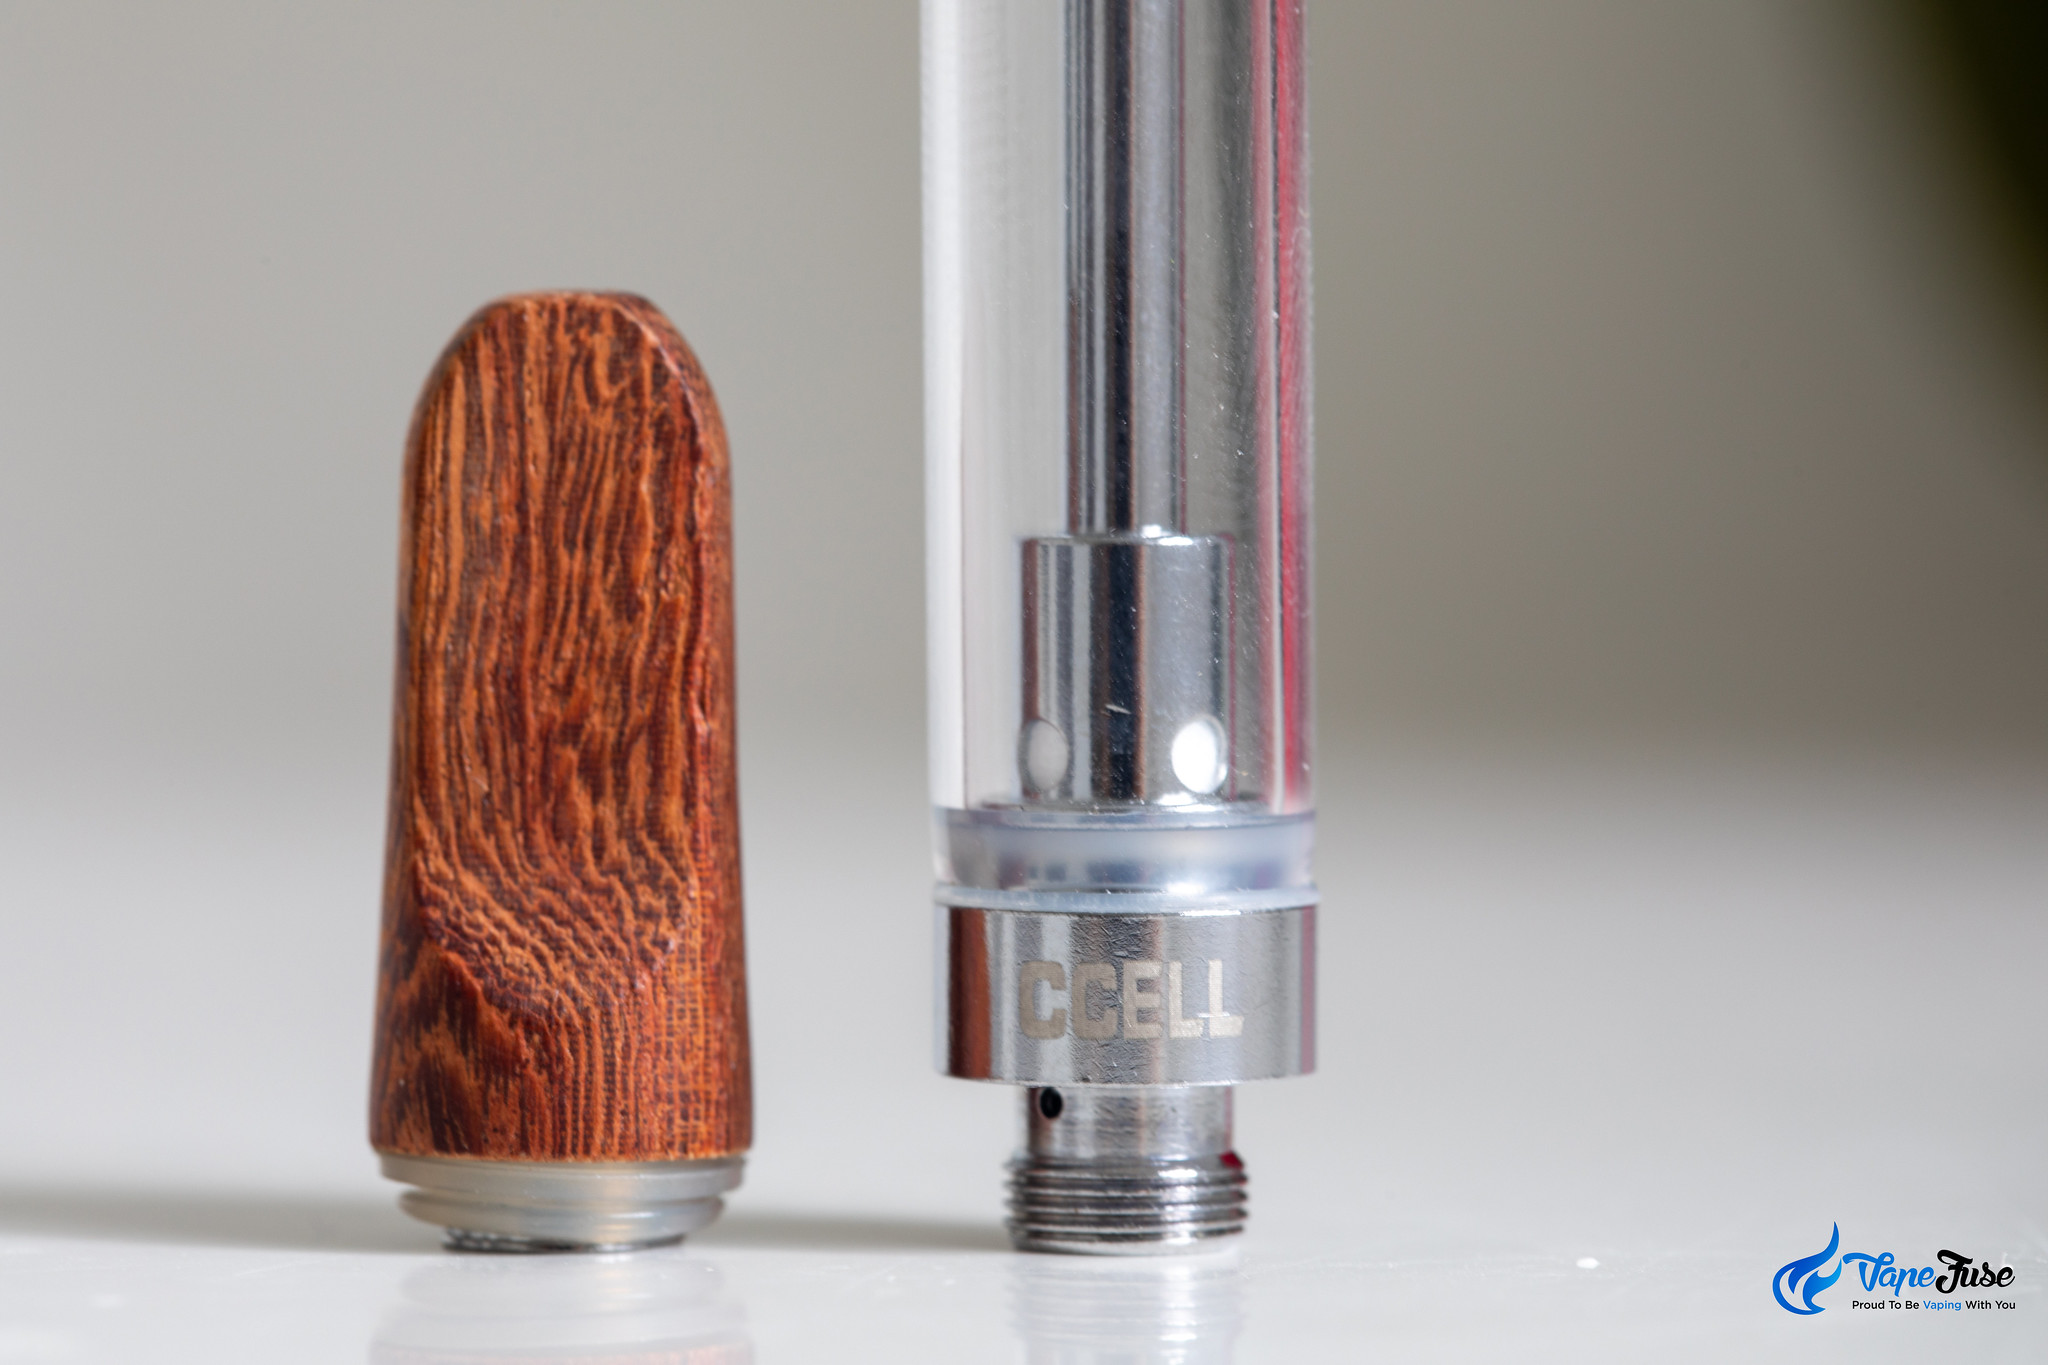 CCell Th2 Oil Cartridge